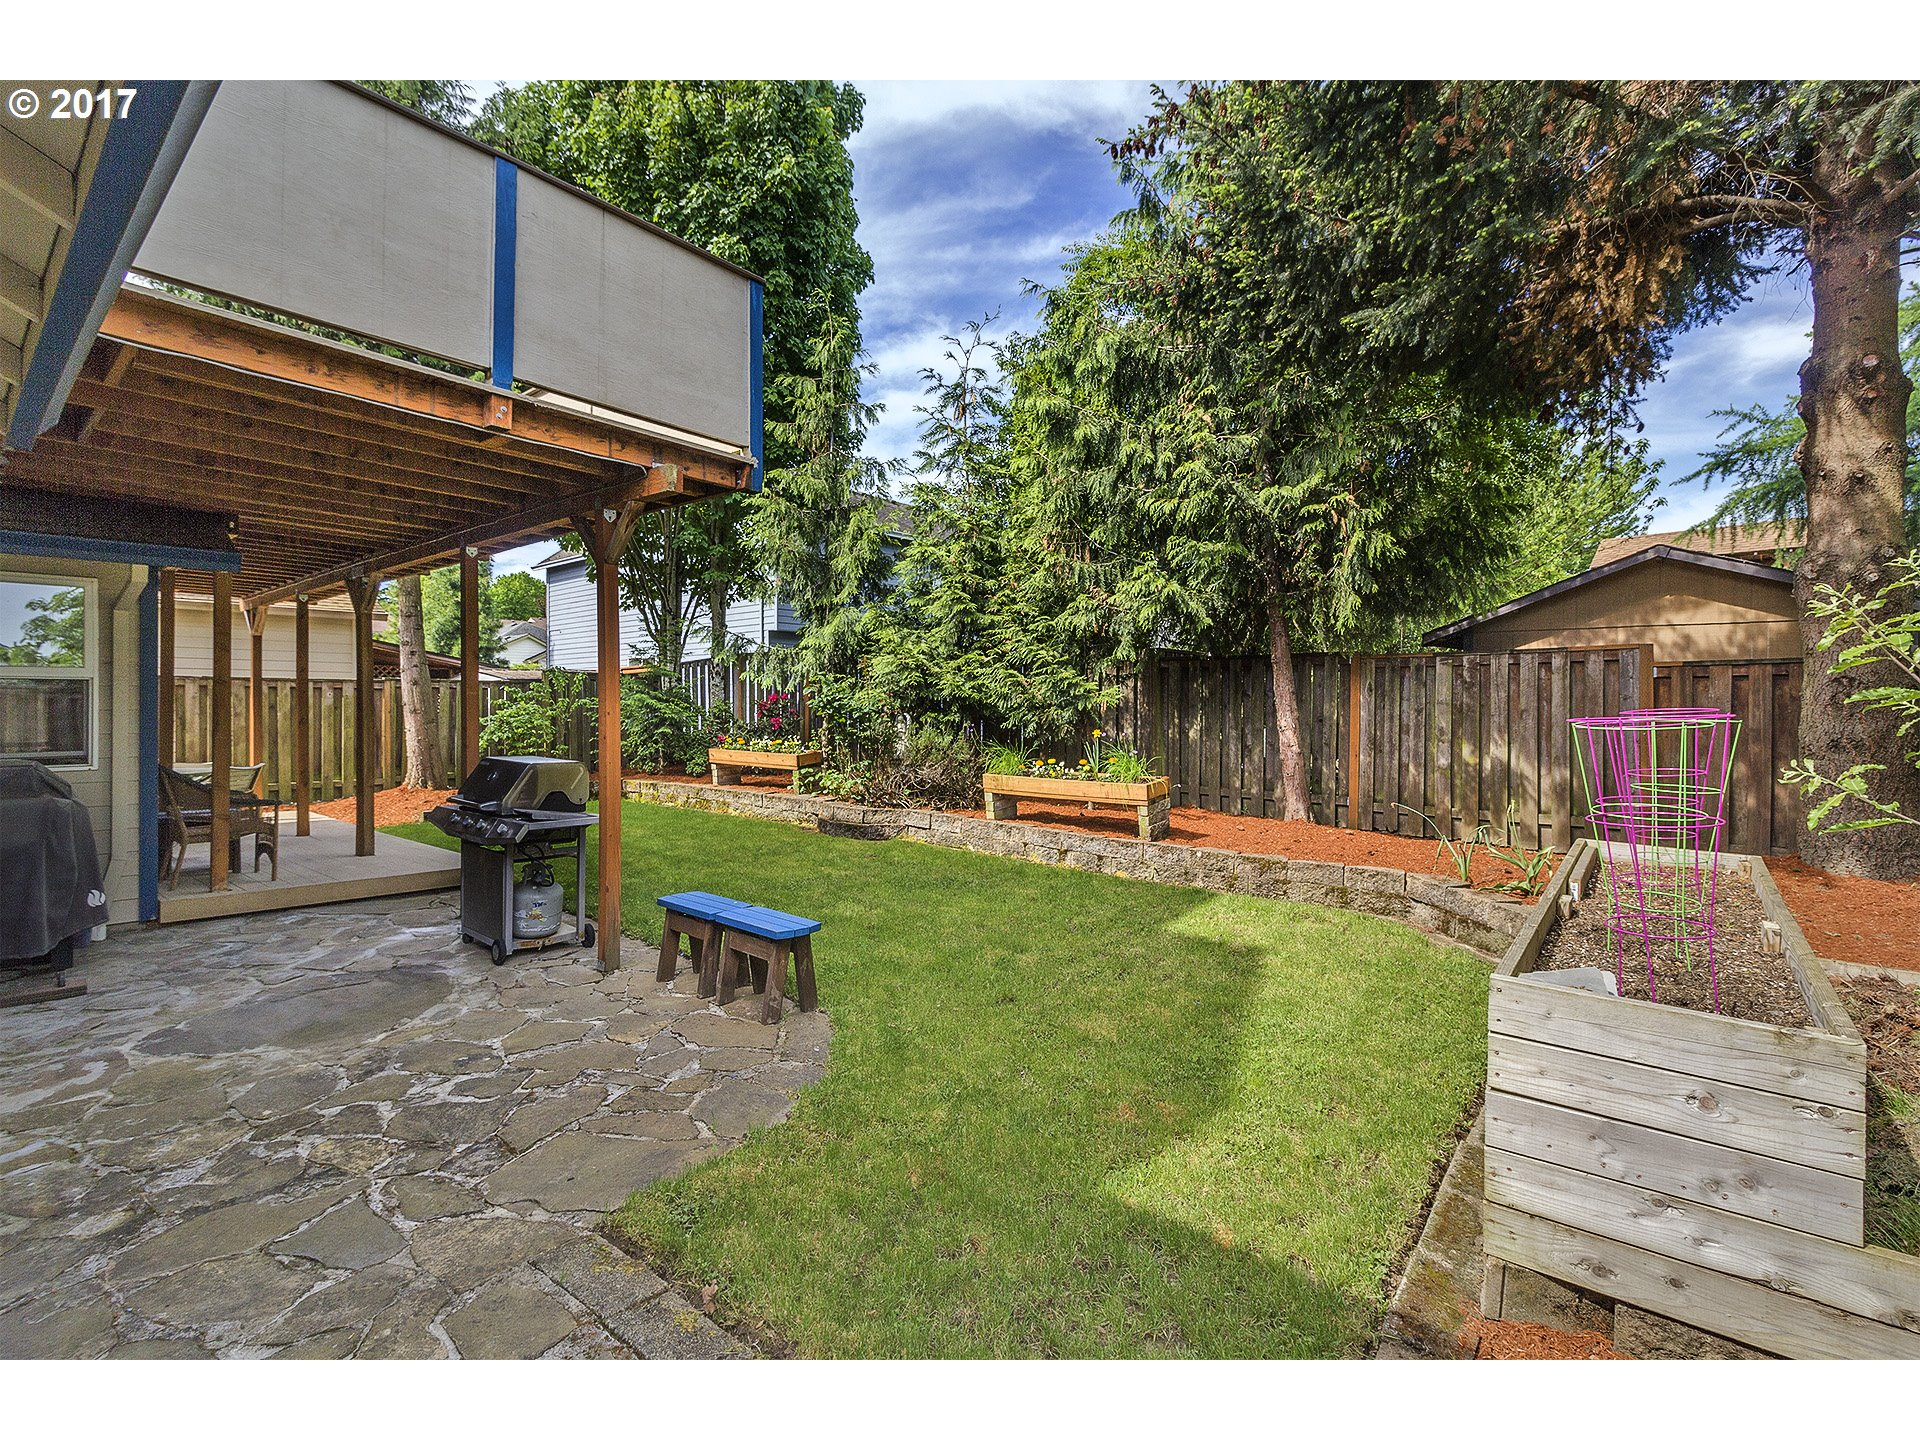 3411 NE 150TH AVE Portland, OR 97230 - MLS #: 17609951